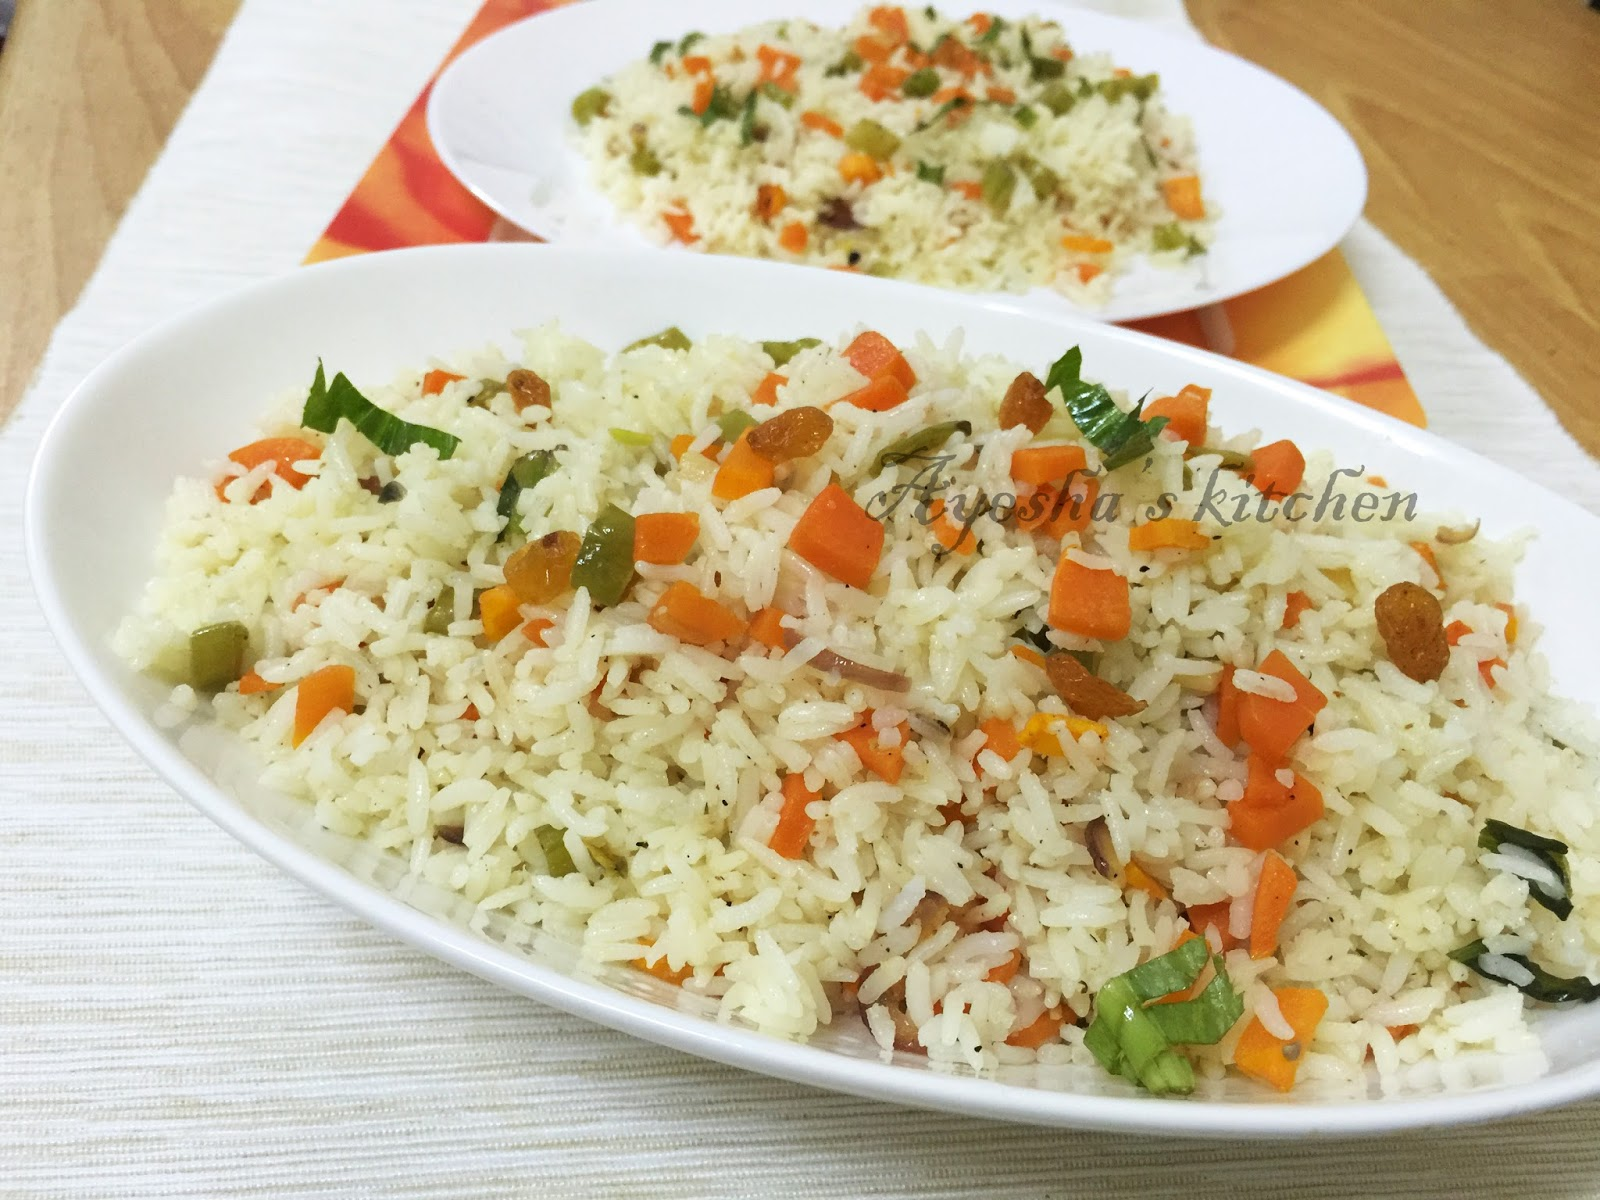 Fried rice recipe vegetable fried rice vegetable fried rice forumfinder